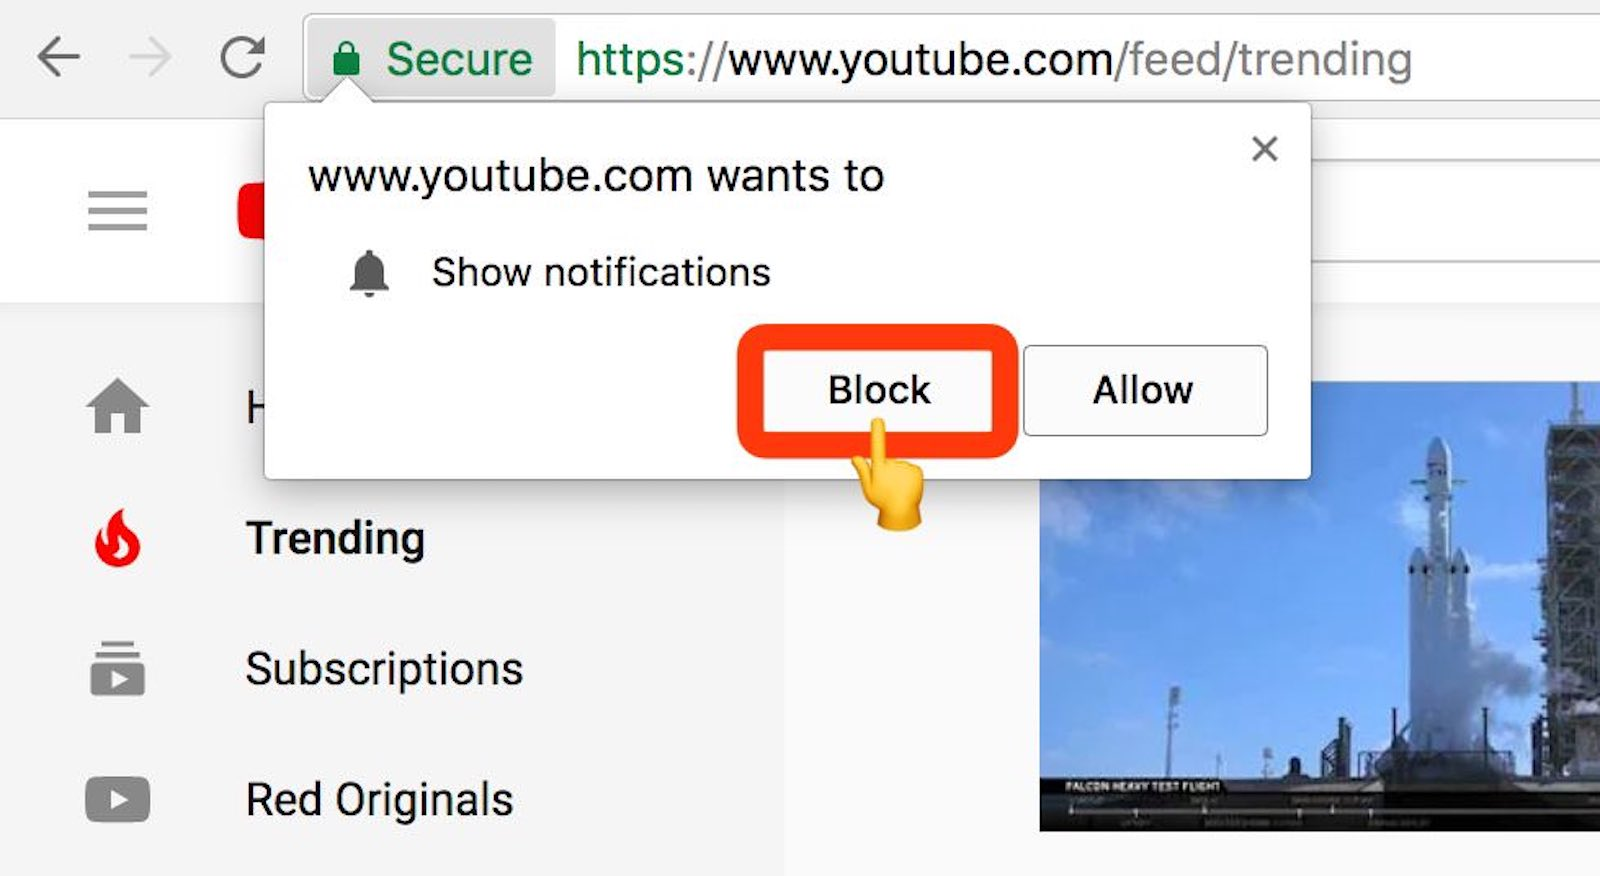 Block notifications from sites